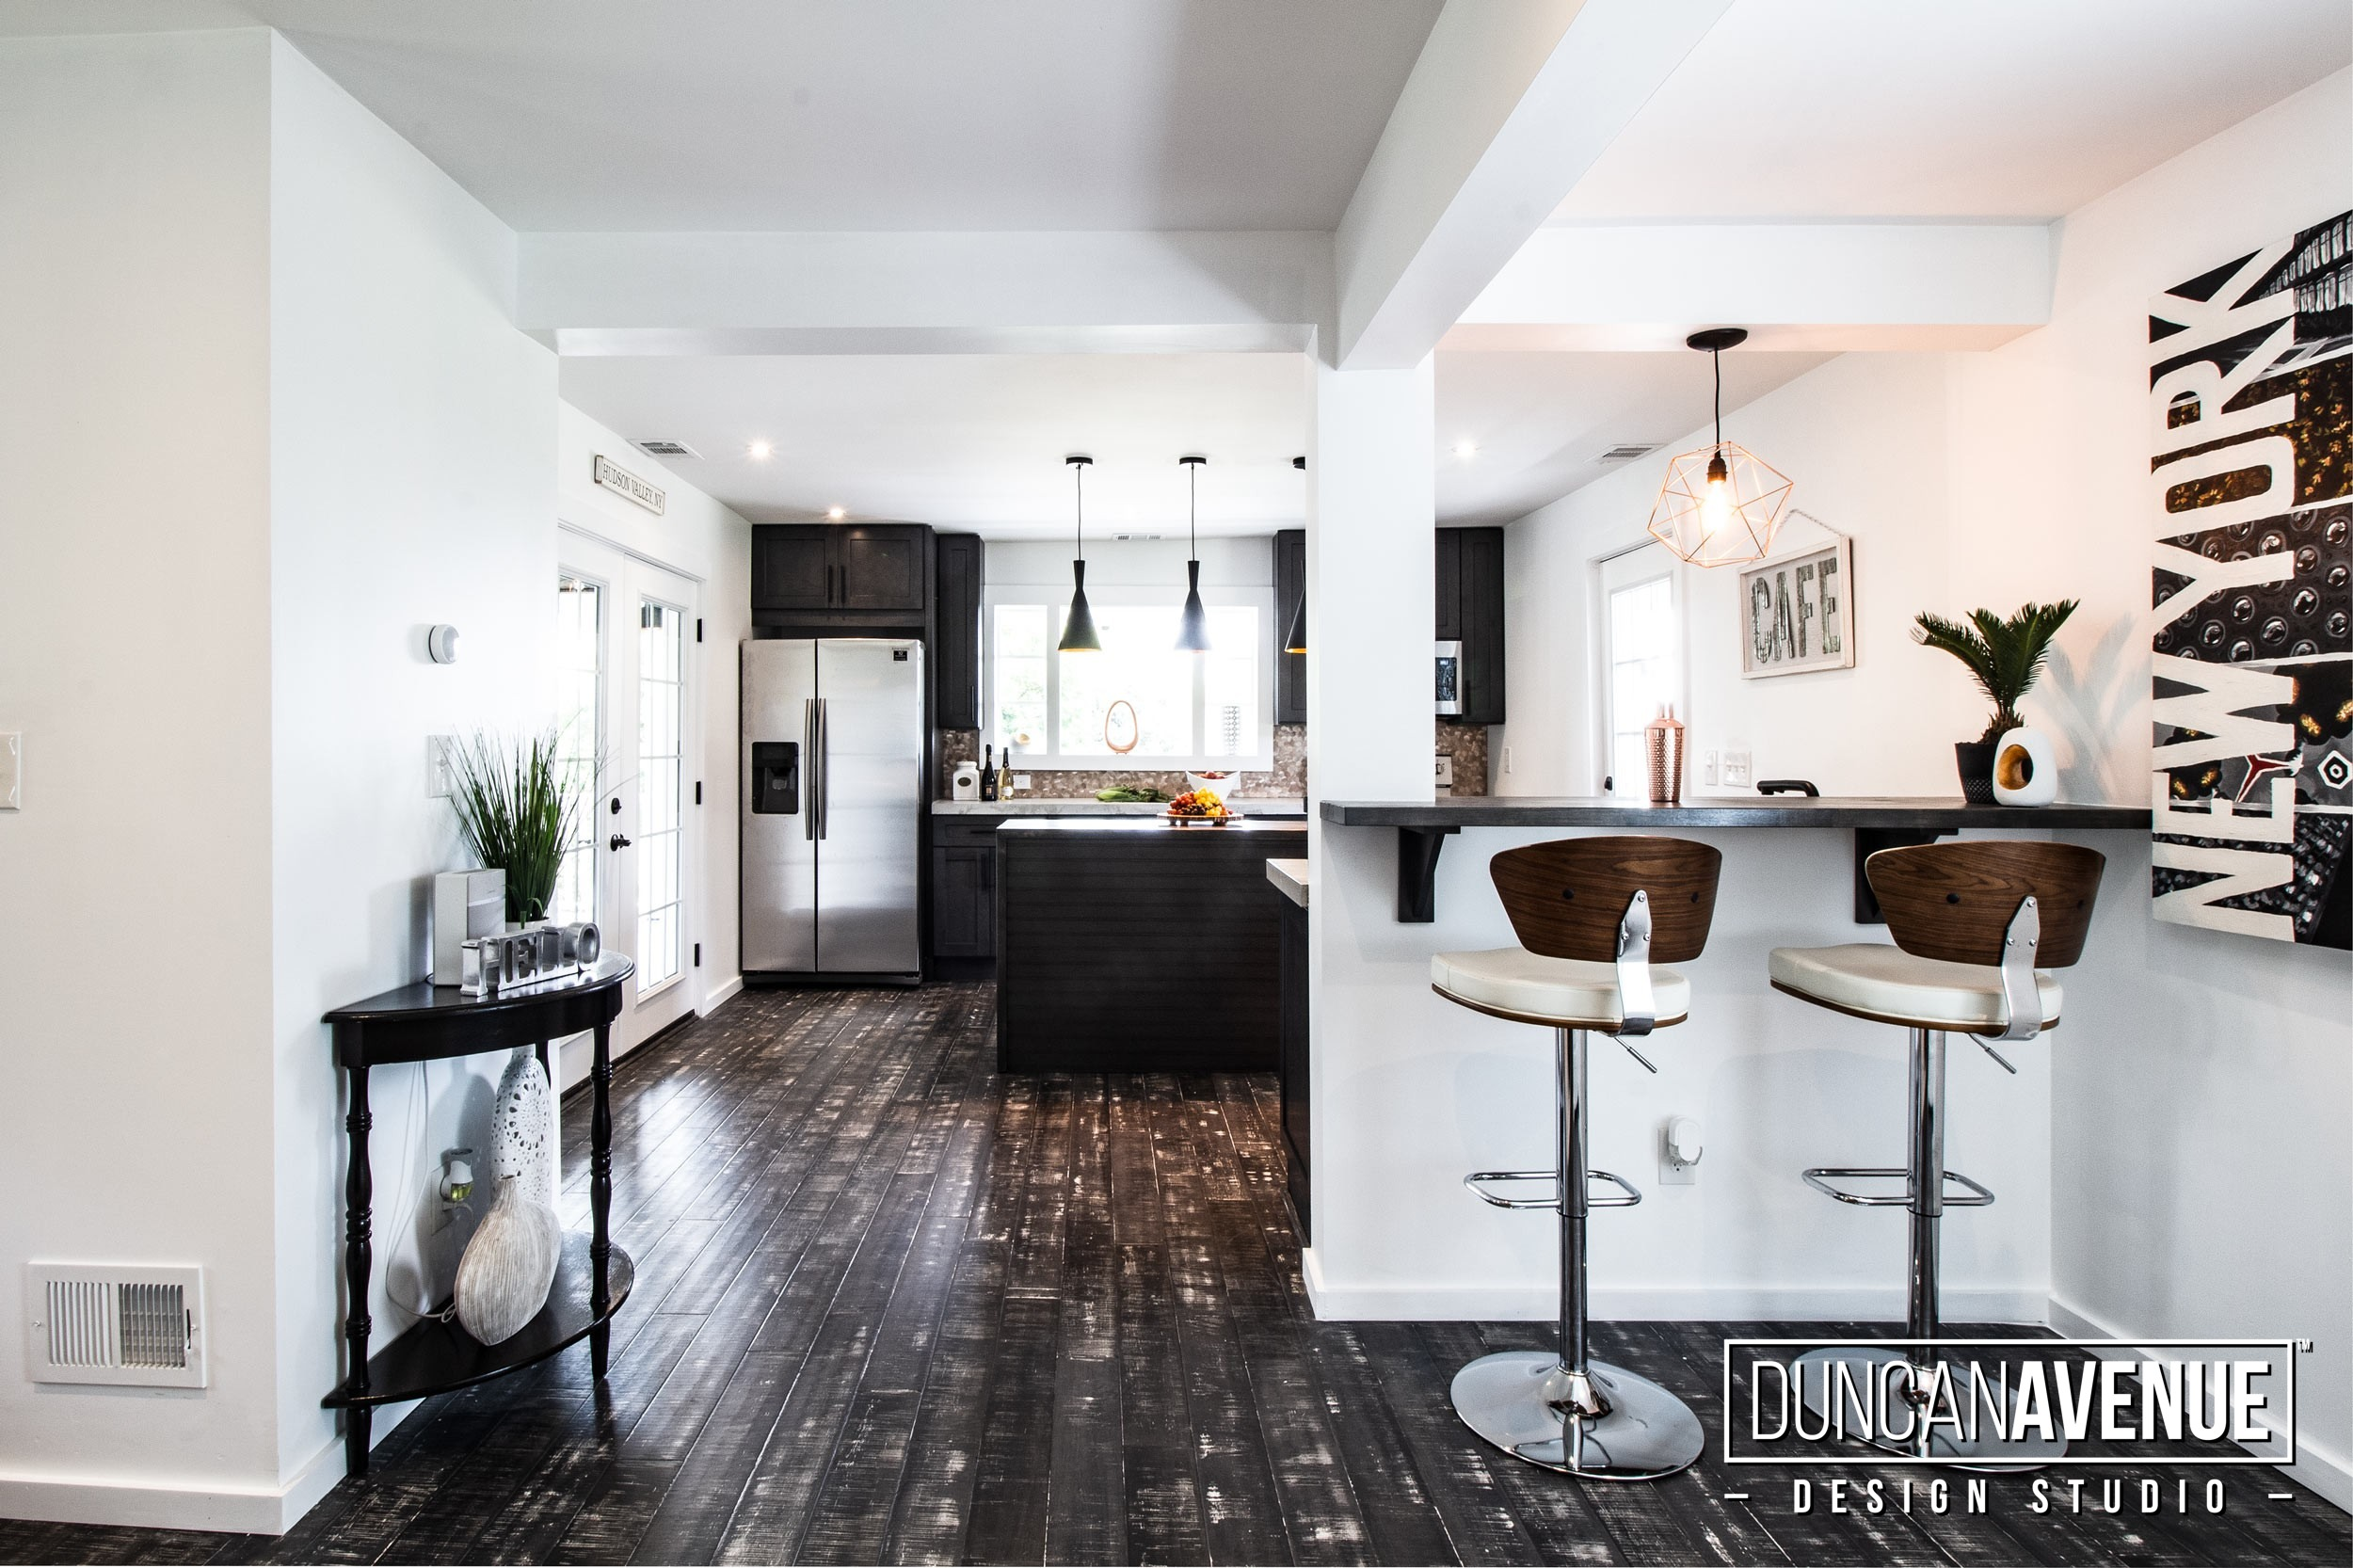 Farmhouse Reinvented - Interior Design Project in Marlboro, New York. Design by Duncan Avenue Studio - Maxwell & Dino Alexander. Construction by ToughConstruct   Hudson Valley